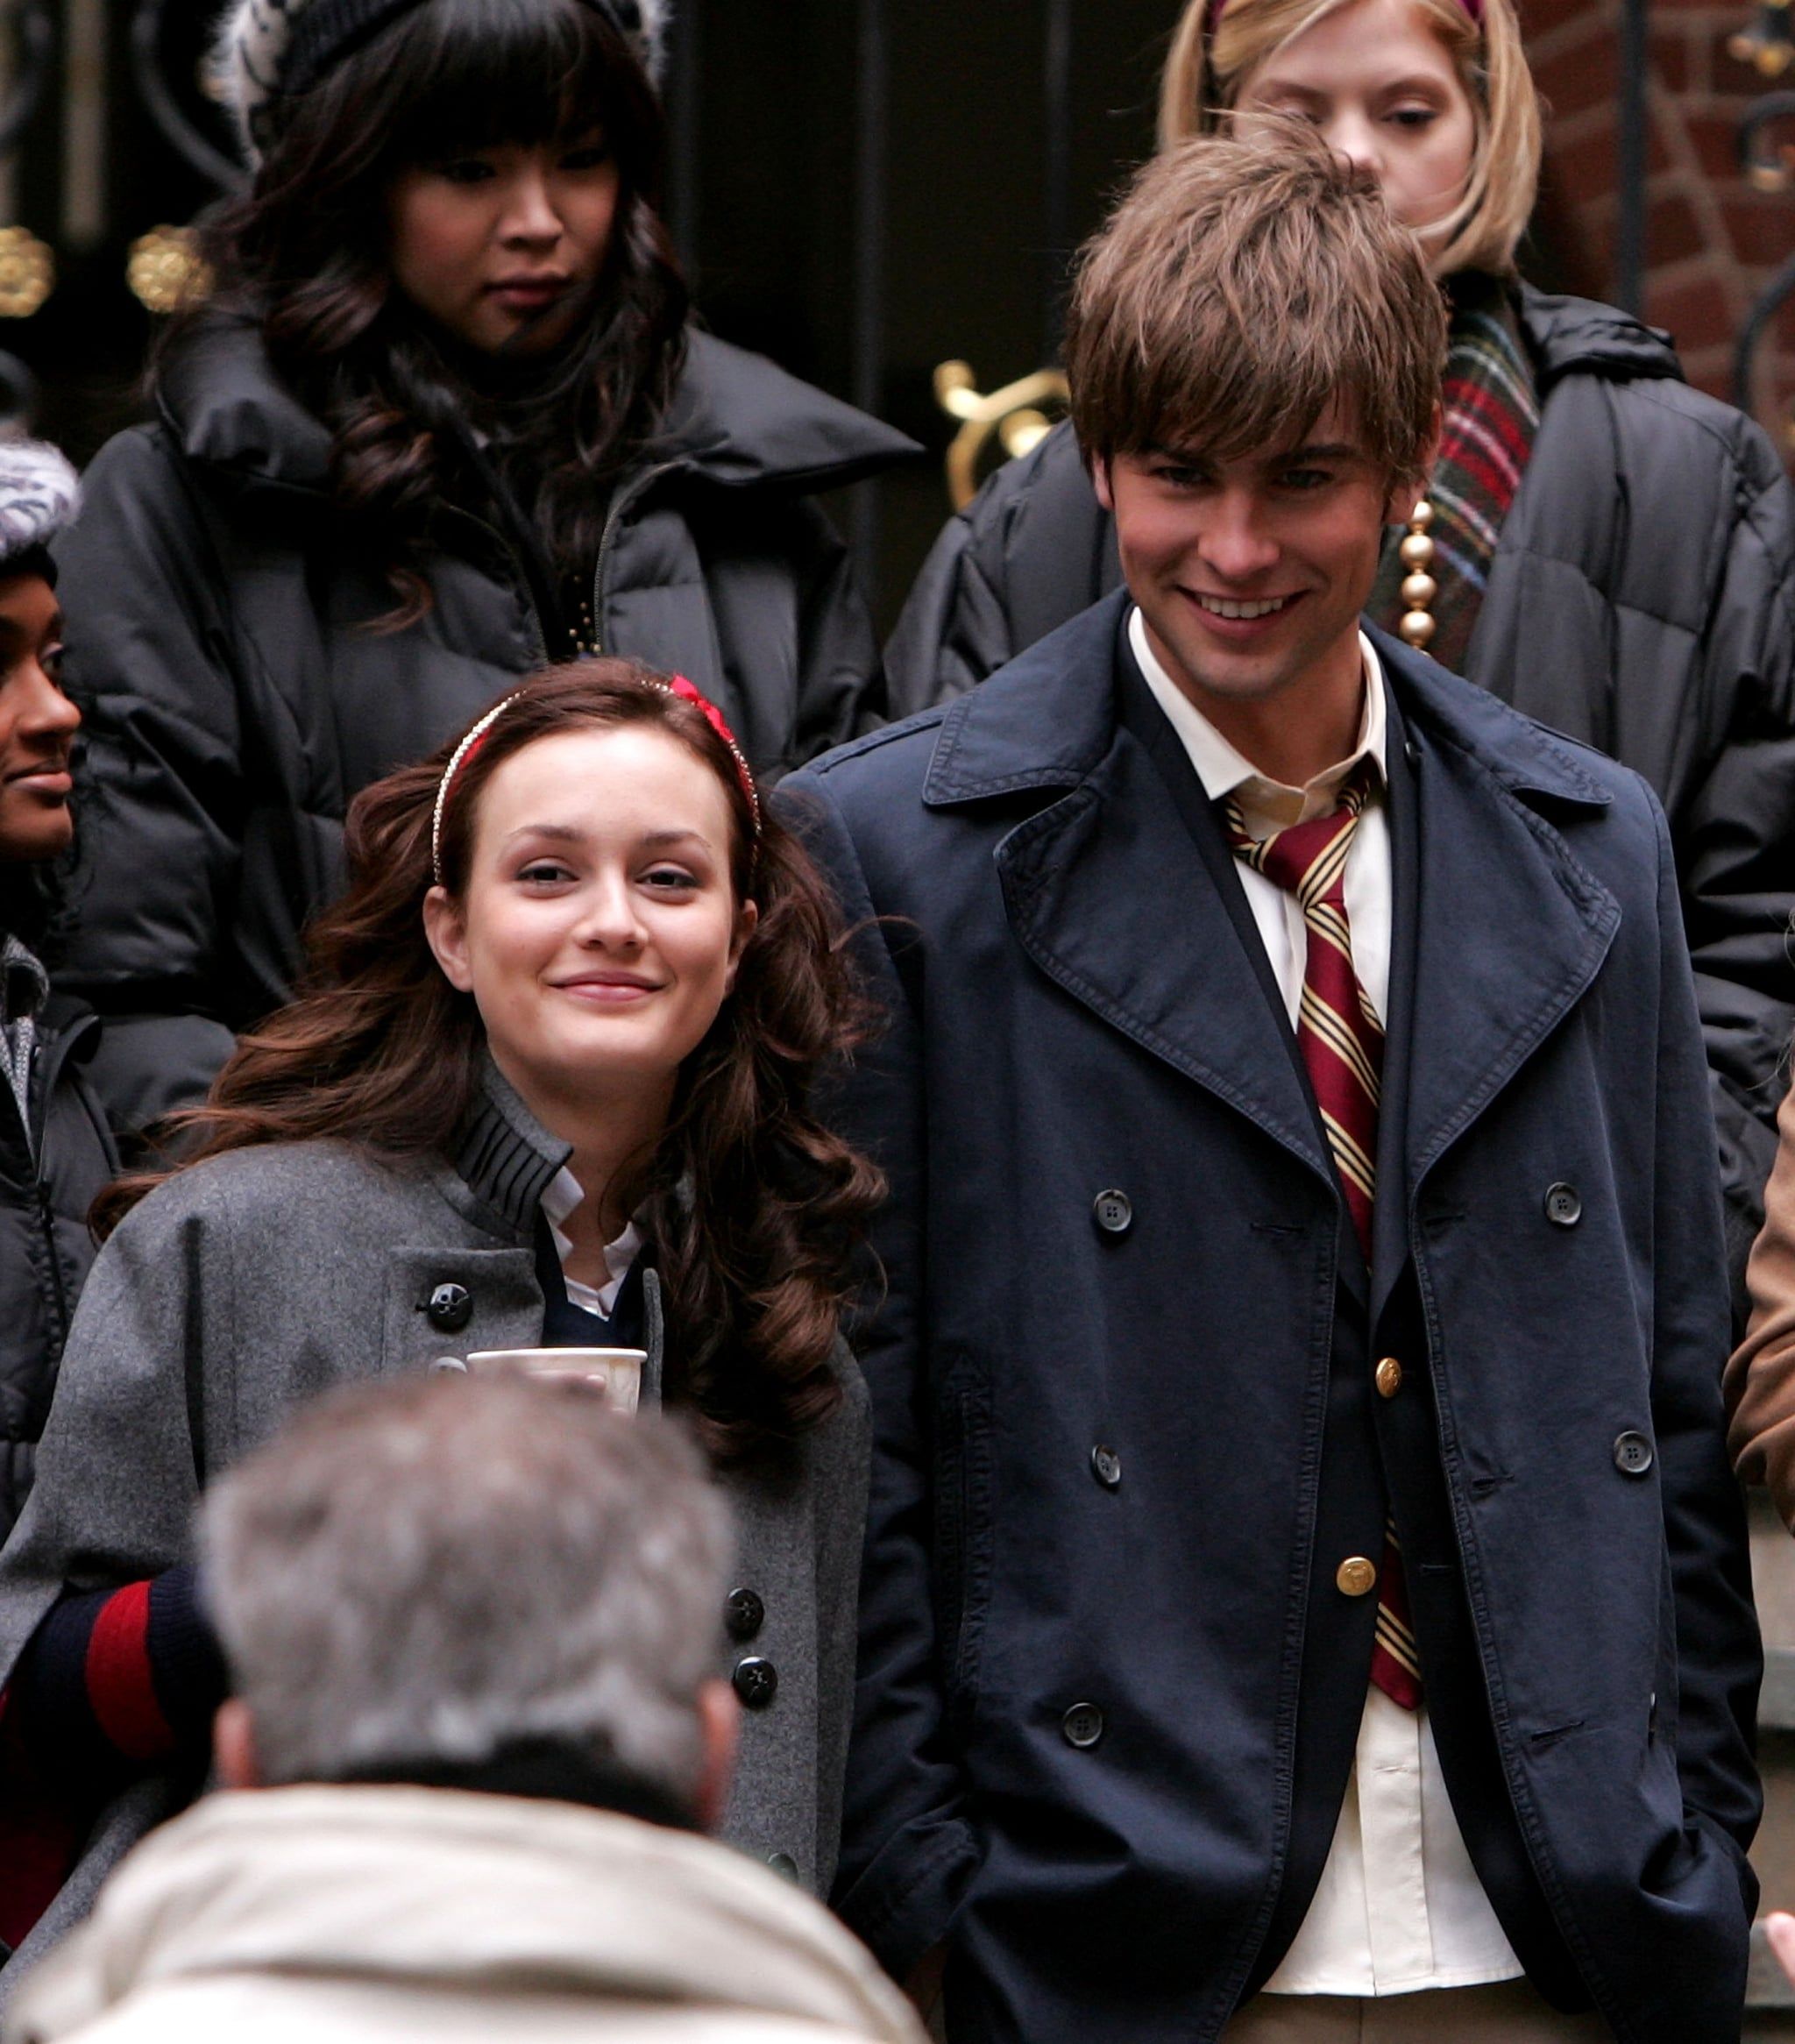 Leighton Meester and Chace Crawford were all smiles on the set in November 2007.